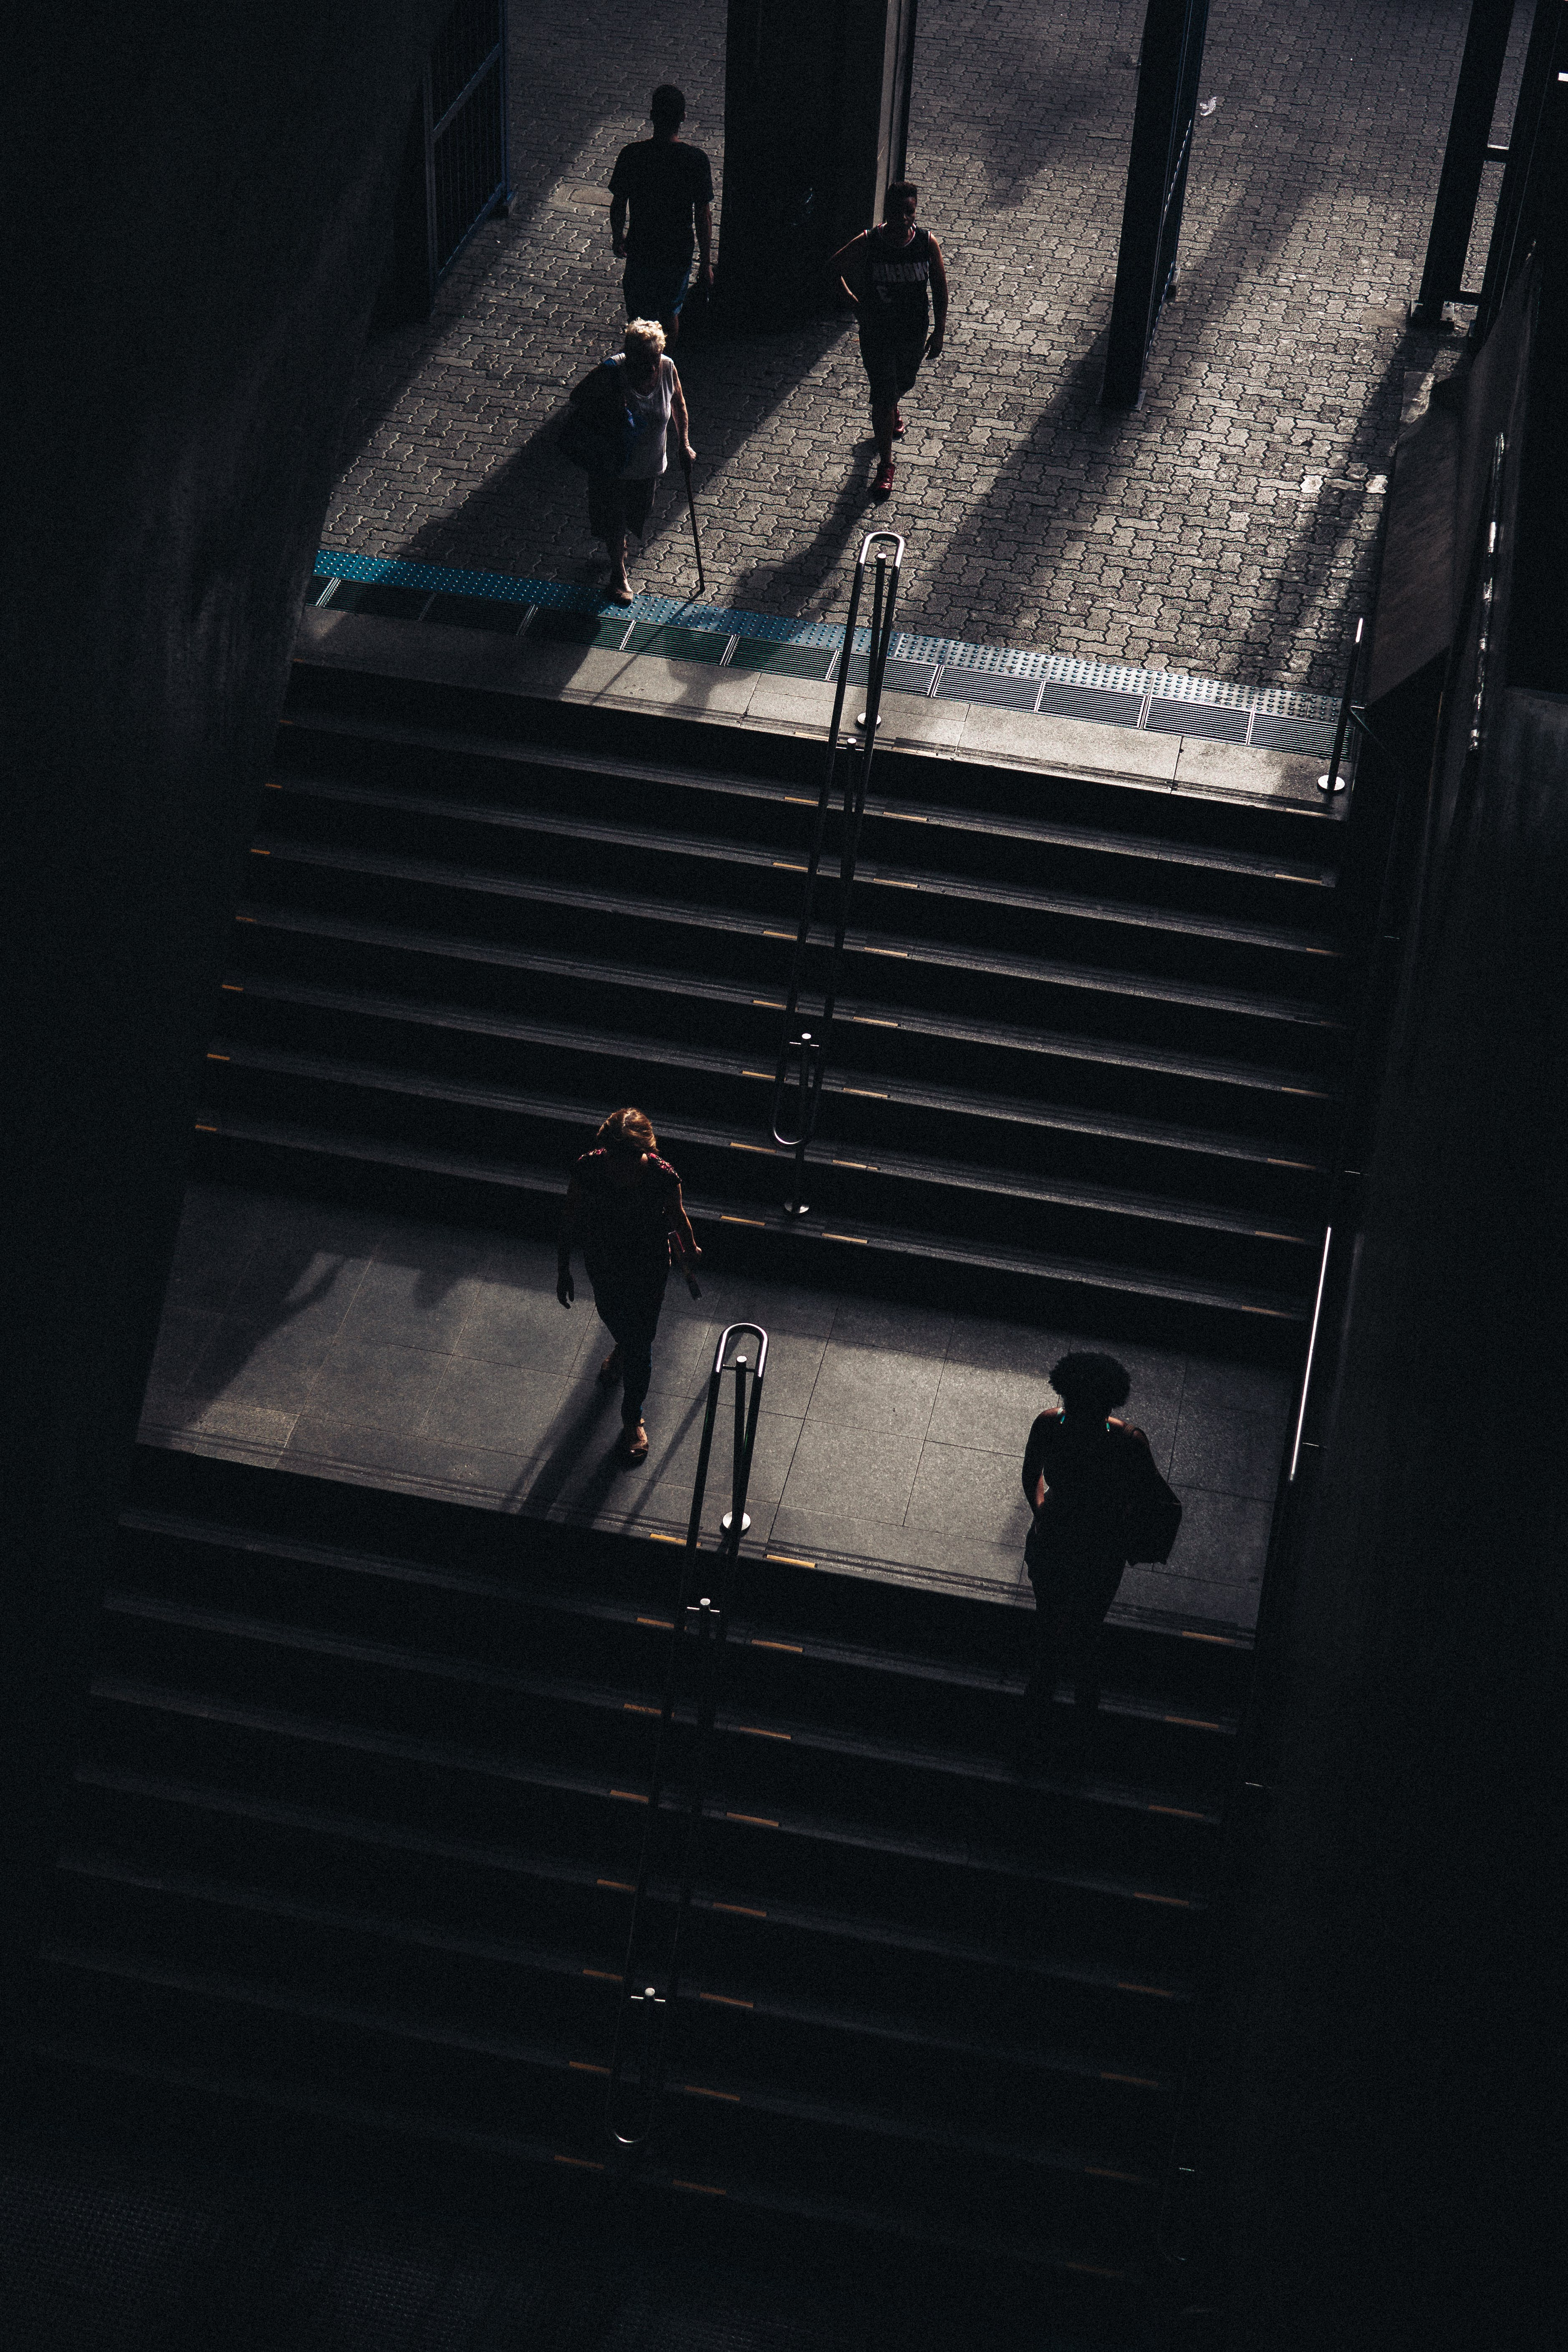 Grayscale Photography of Stairs With People